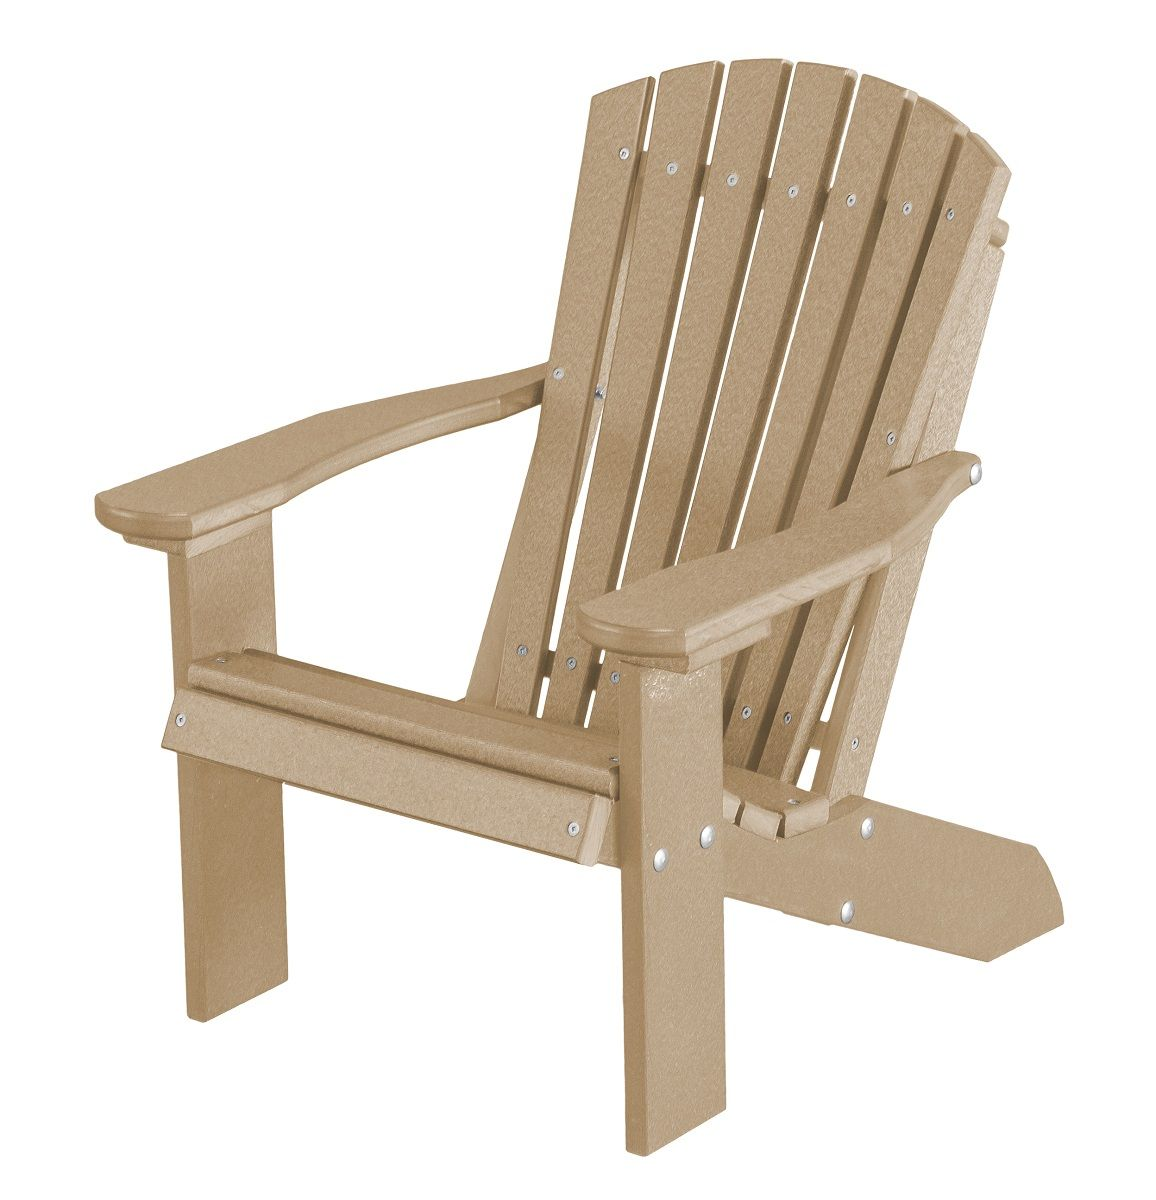 Weathered Wood Sidra Child's Adirondack Chair